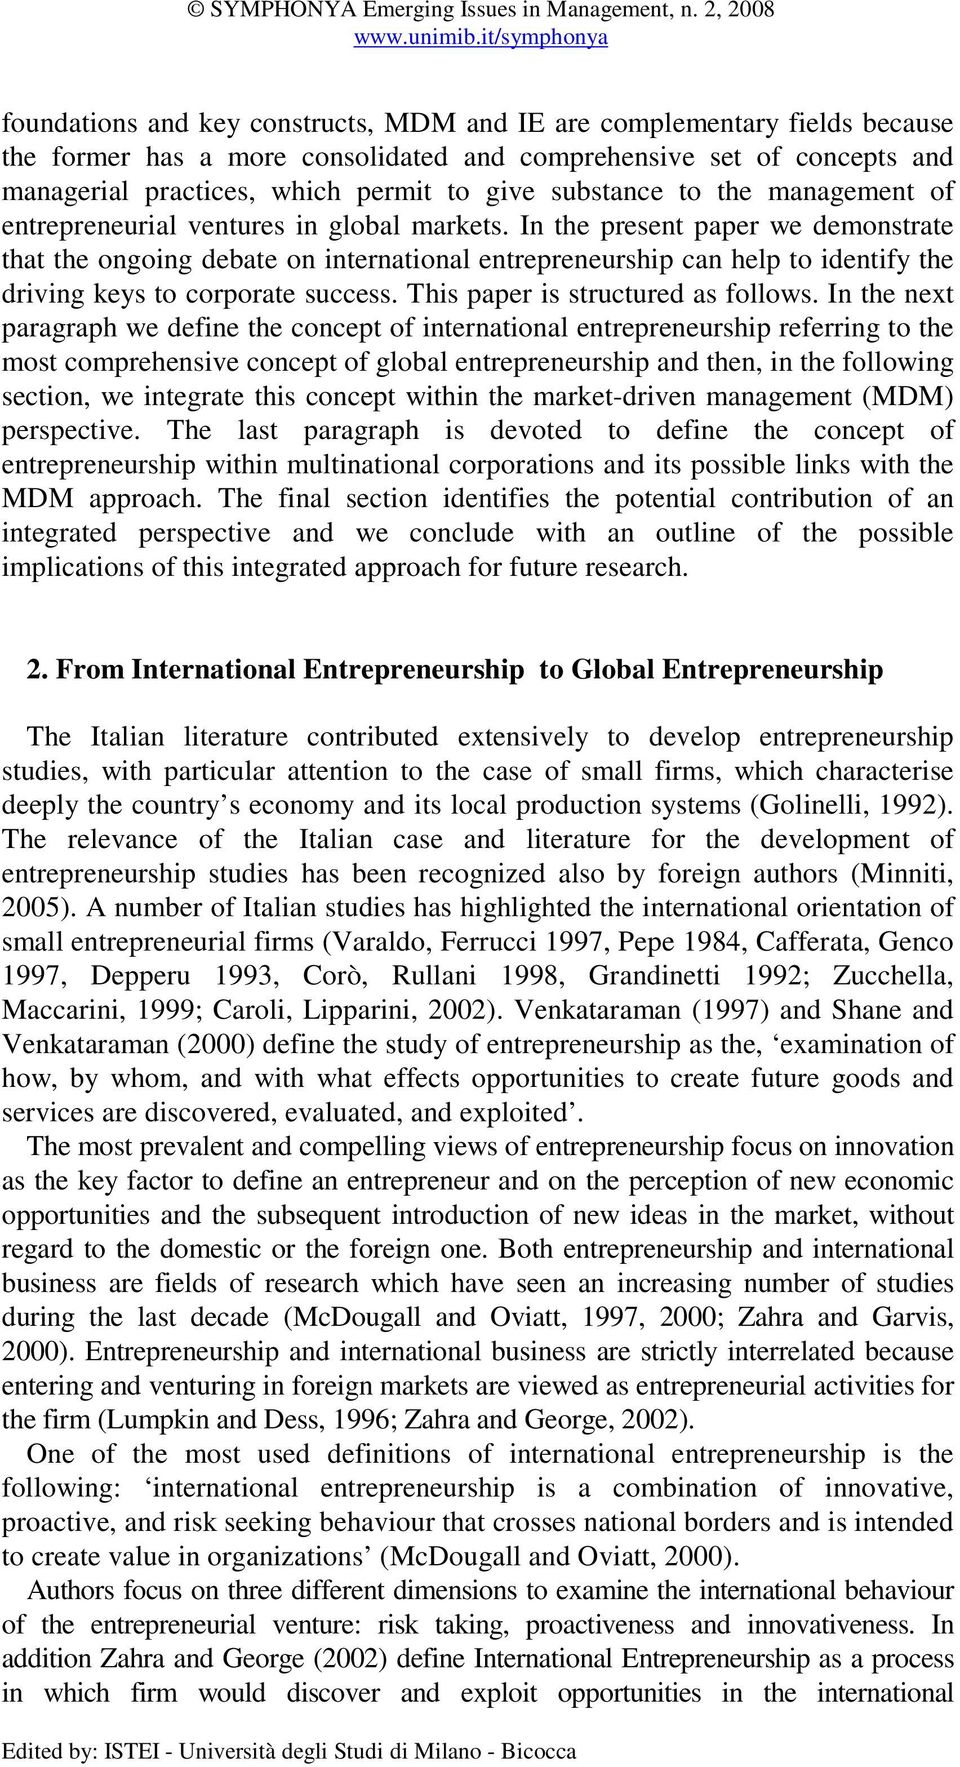 In the present paper we demonstrate that the ongoing debate on international entrepreneurship can help to identify the driving keys to corporate success. This paper is structured as follows.